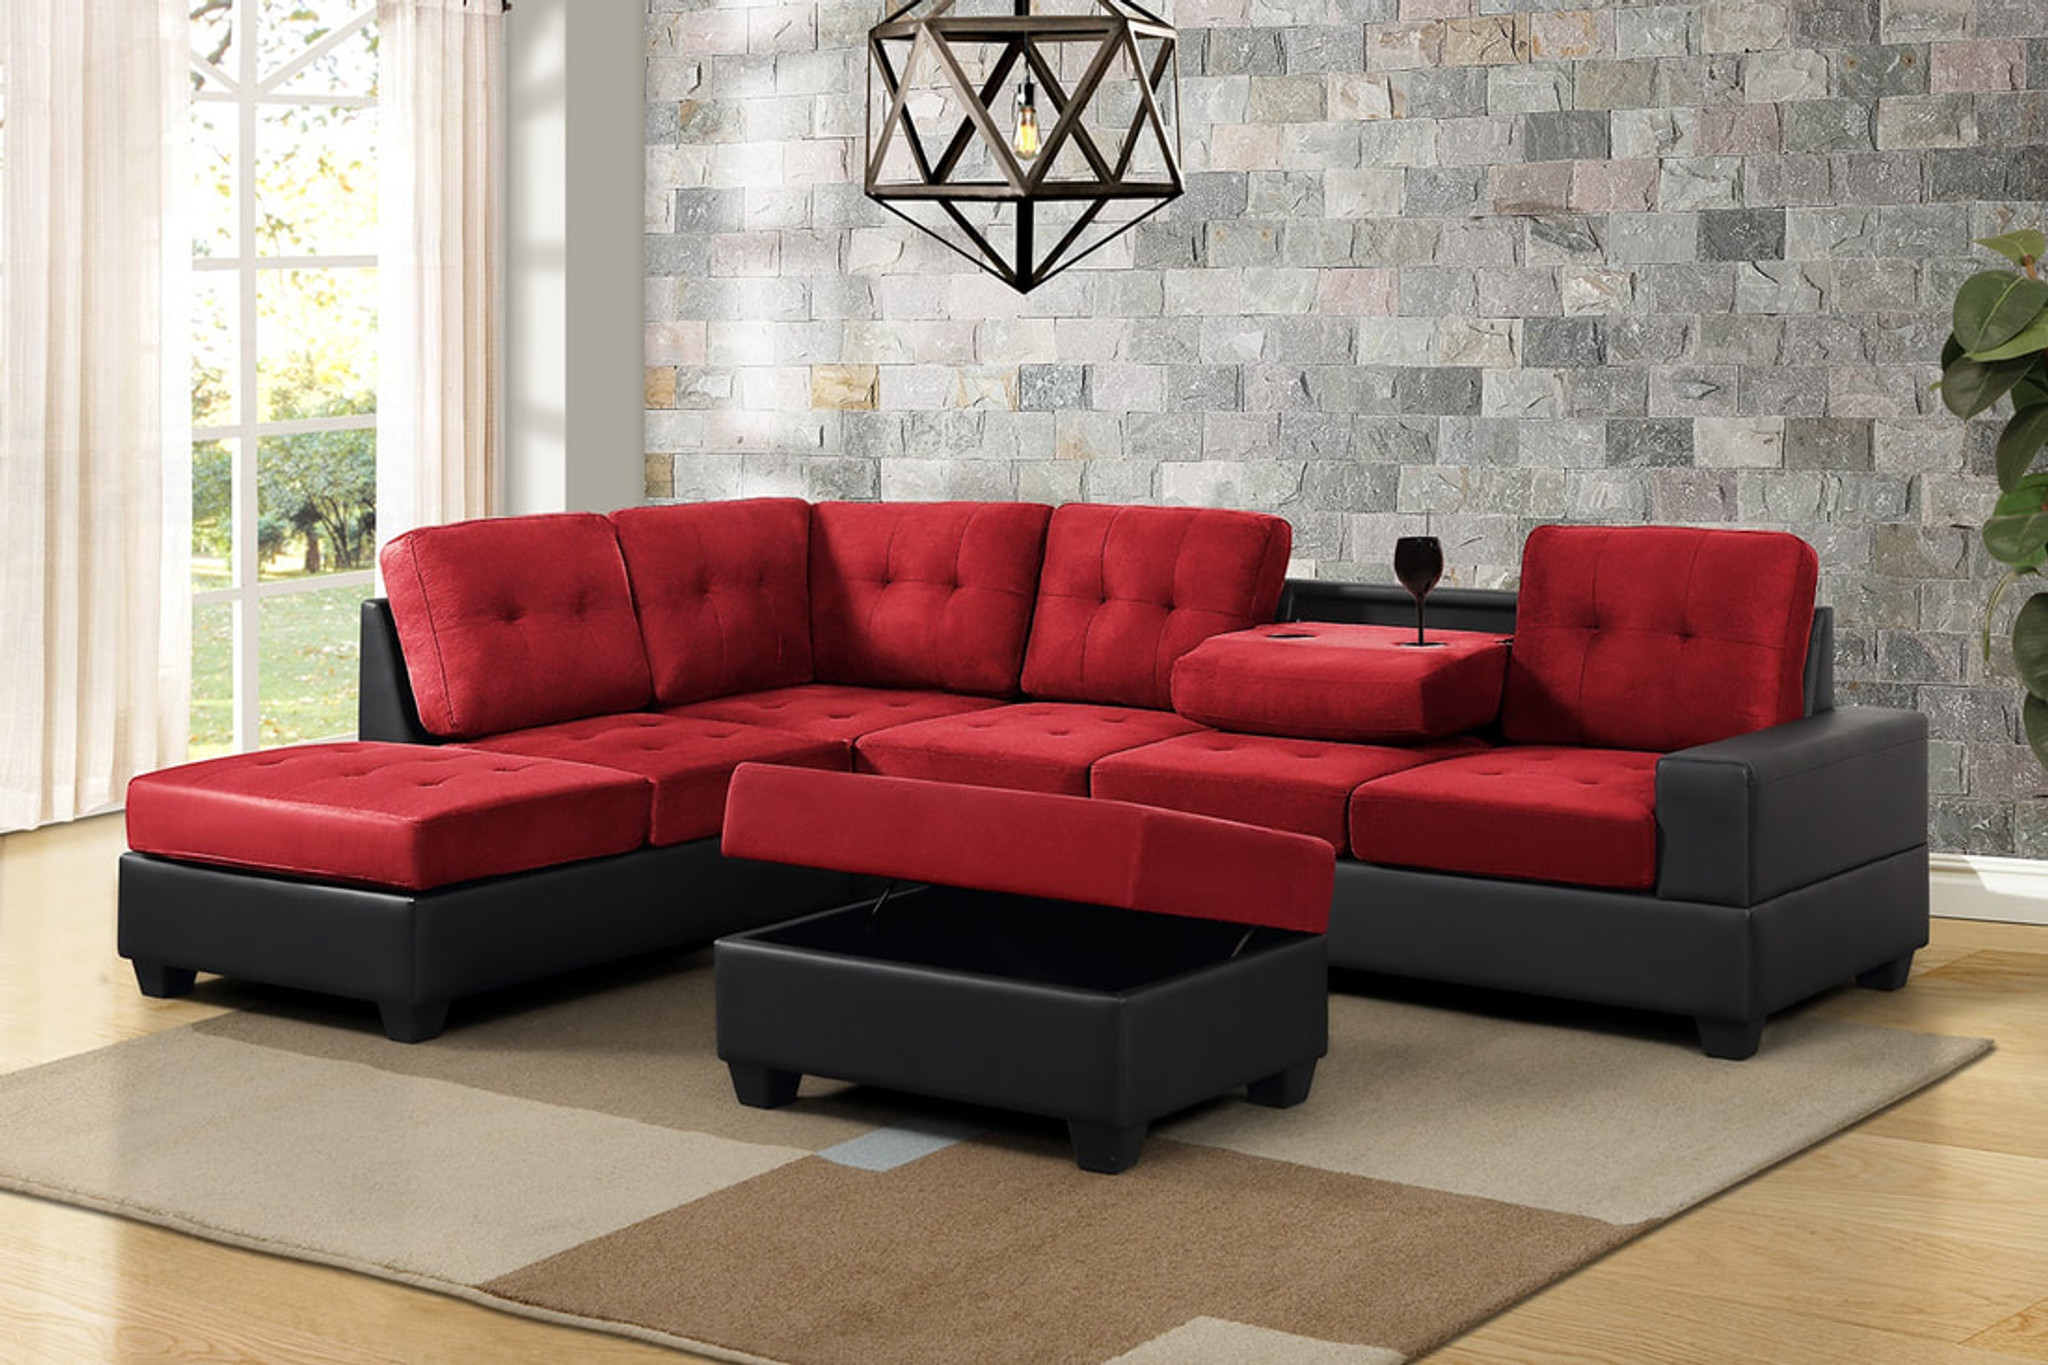 3 pcs heights thick fabric bonded leather sectional with drop down cup holder with ottoman in red